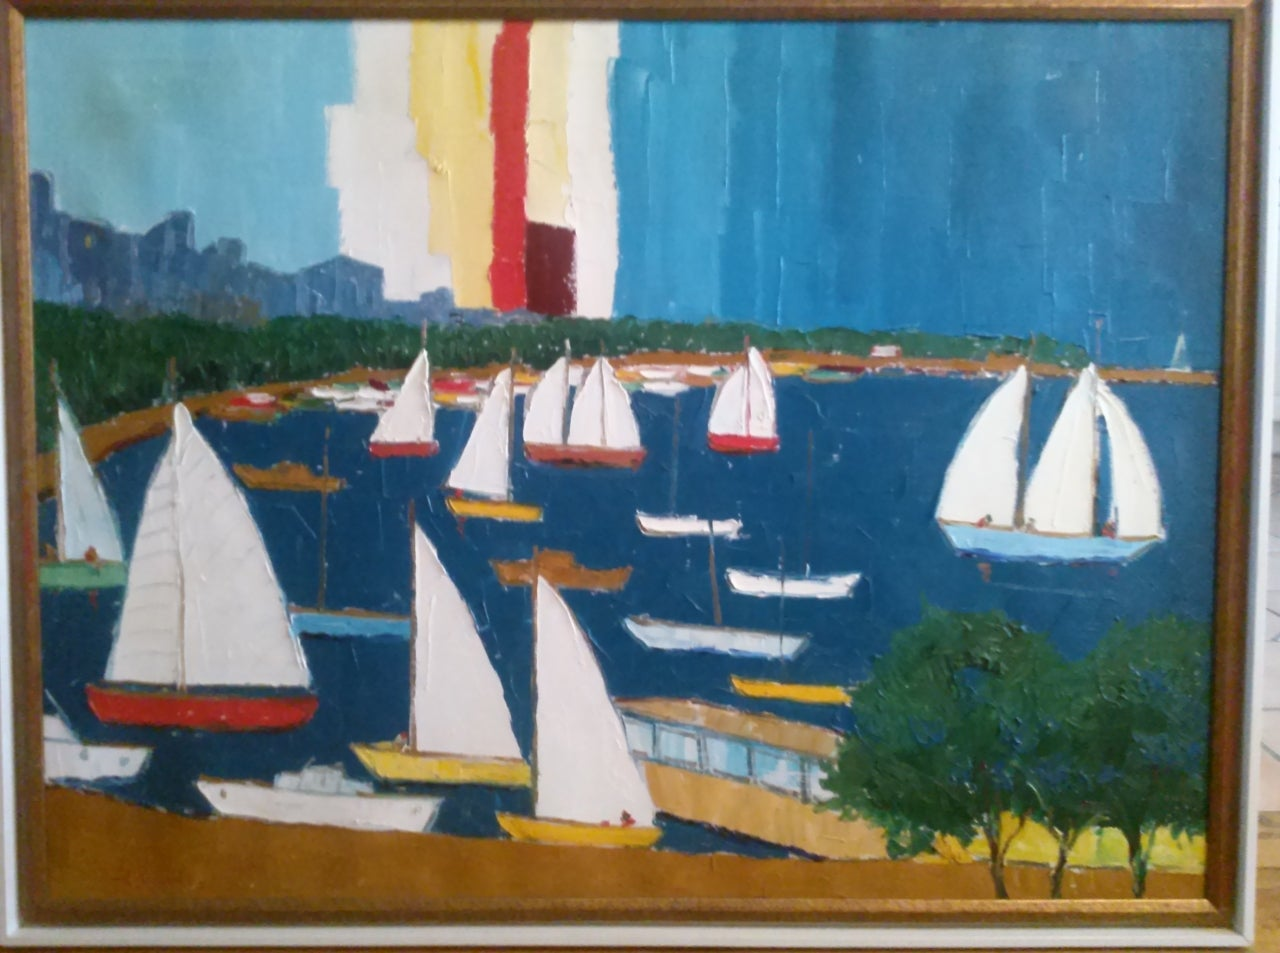 Large, vivid palette knife painting in the manner of Nicola Simbari. Dated 1970. signature is illegible but  appears to read Campanile as a last name. It depicts sailboats in a harbour. A wonderful nautical theme.